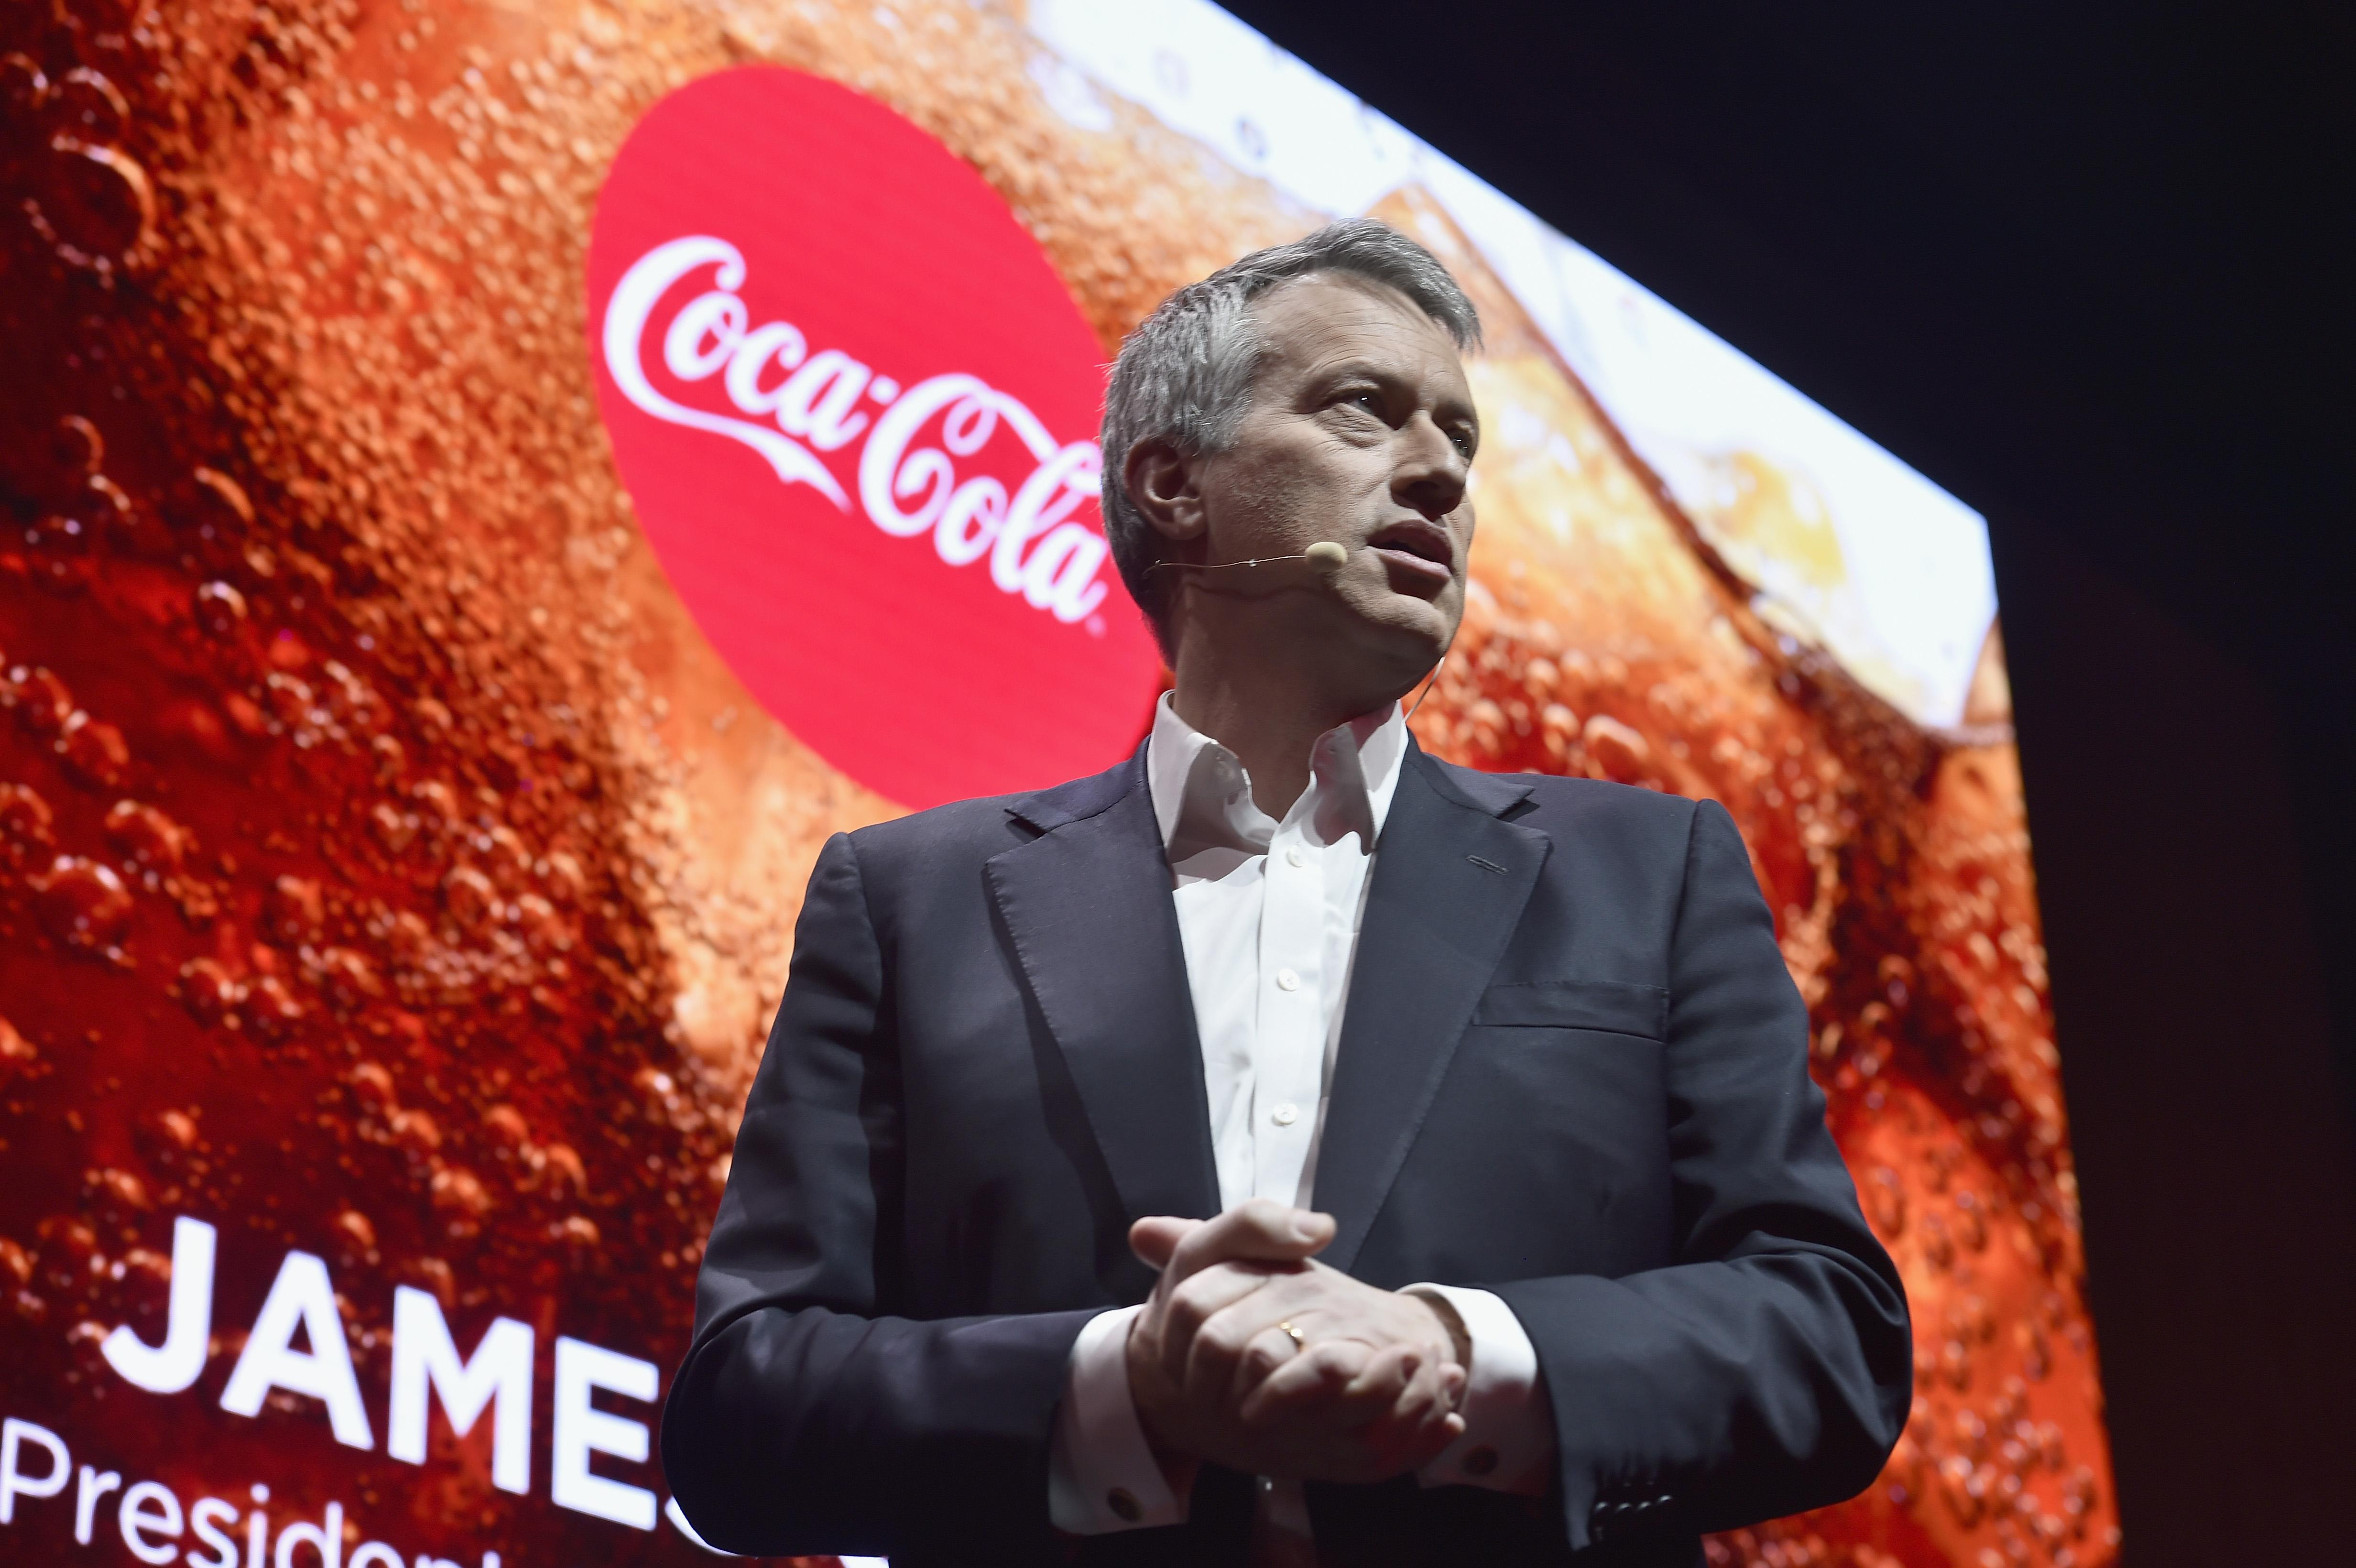 Coca-Cola CEO James Quincey has spoken out against a possible Brexit.